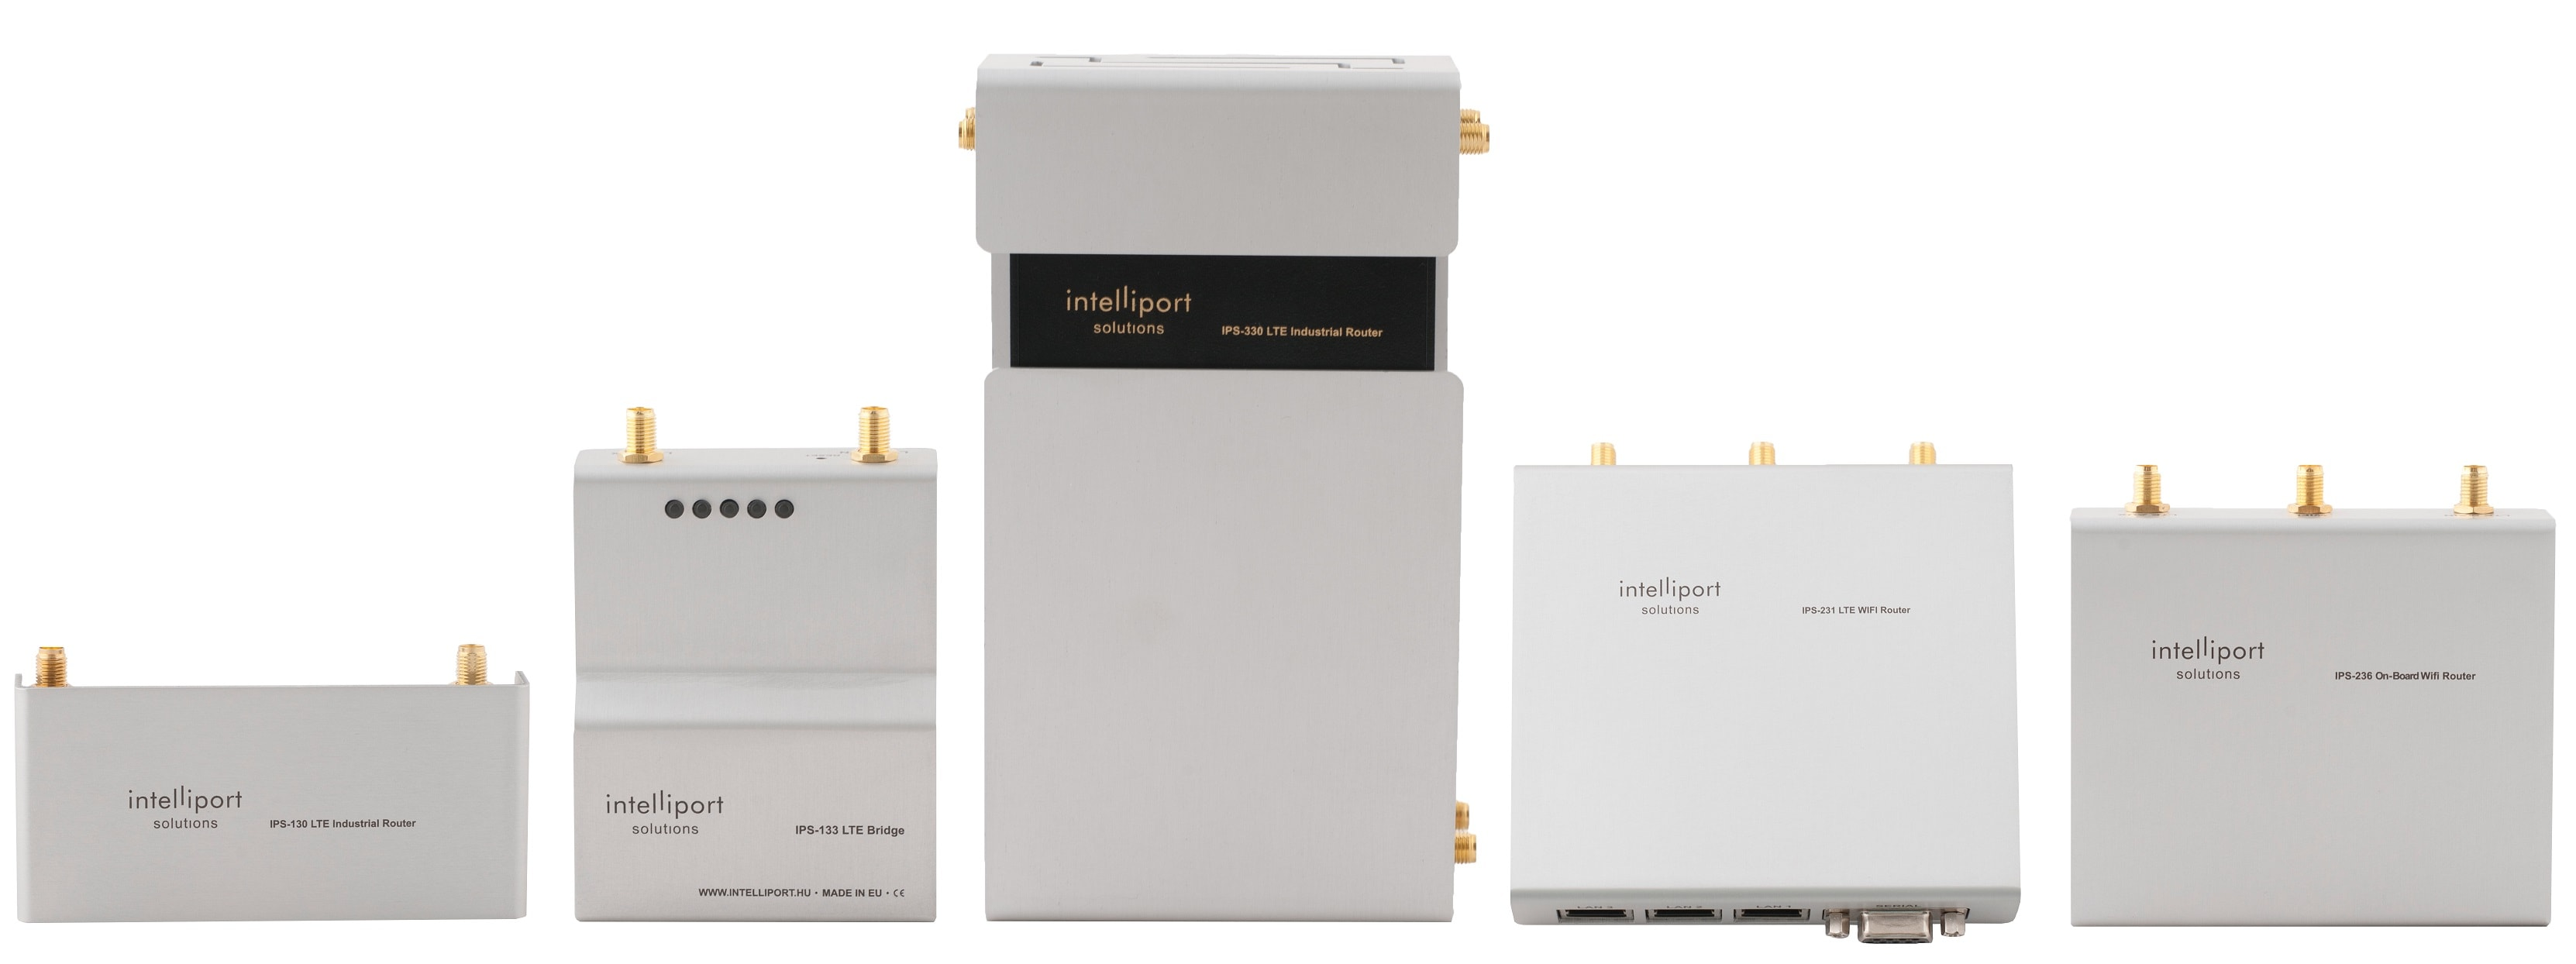 4G/LTE Devices - Intelliport